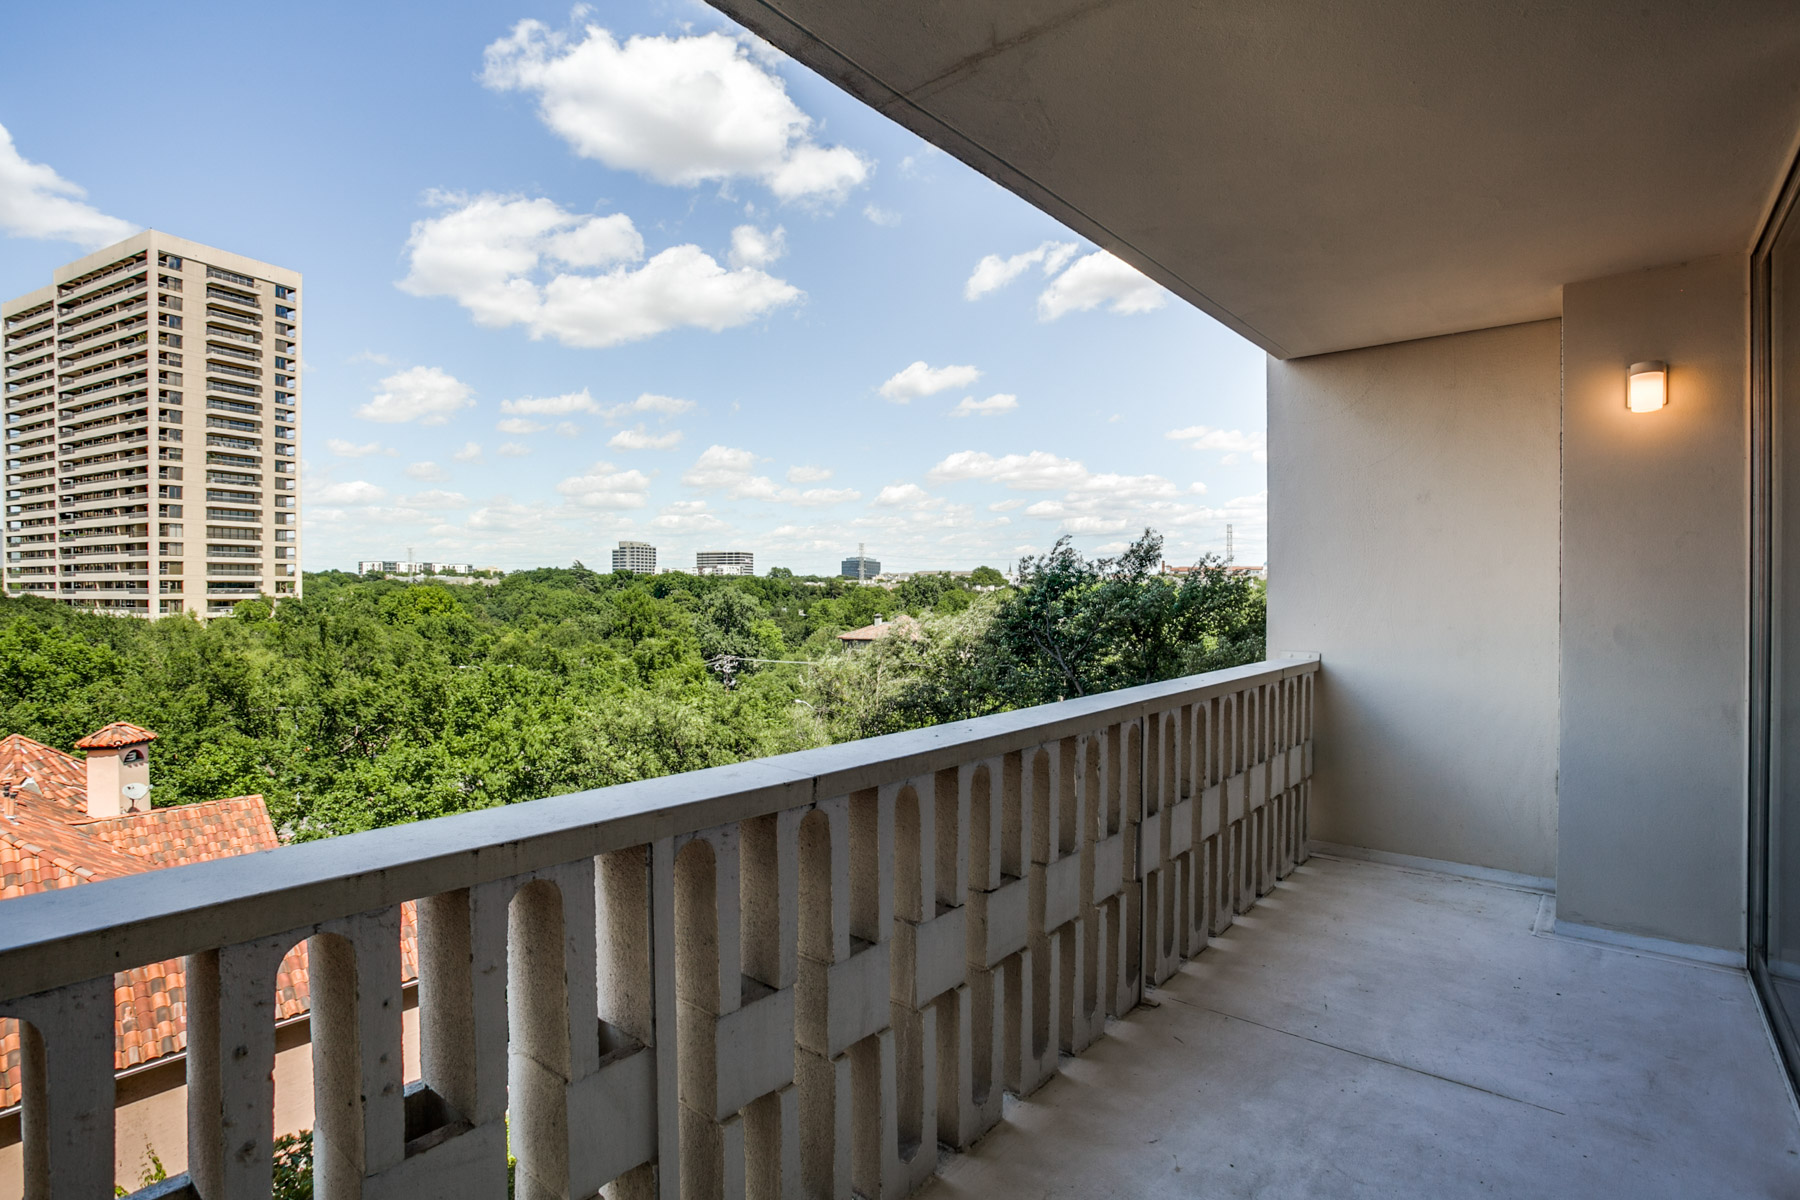 Vivienda unifamiliar por un Venta en Fabulous 1 bedroom high-rise condo on Turtle Creek 3701 Turtle Creek Blvd 6D Dallas, Texas, 75219 Estados Unidos